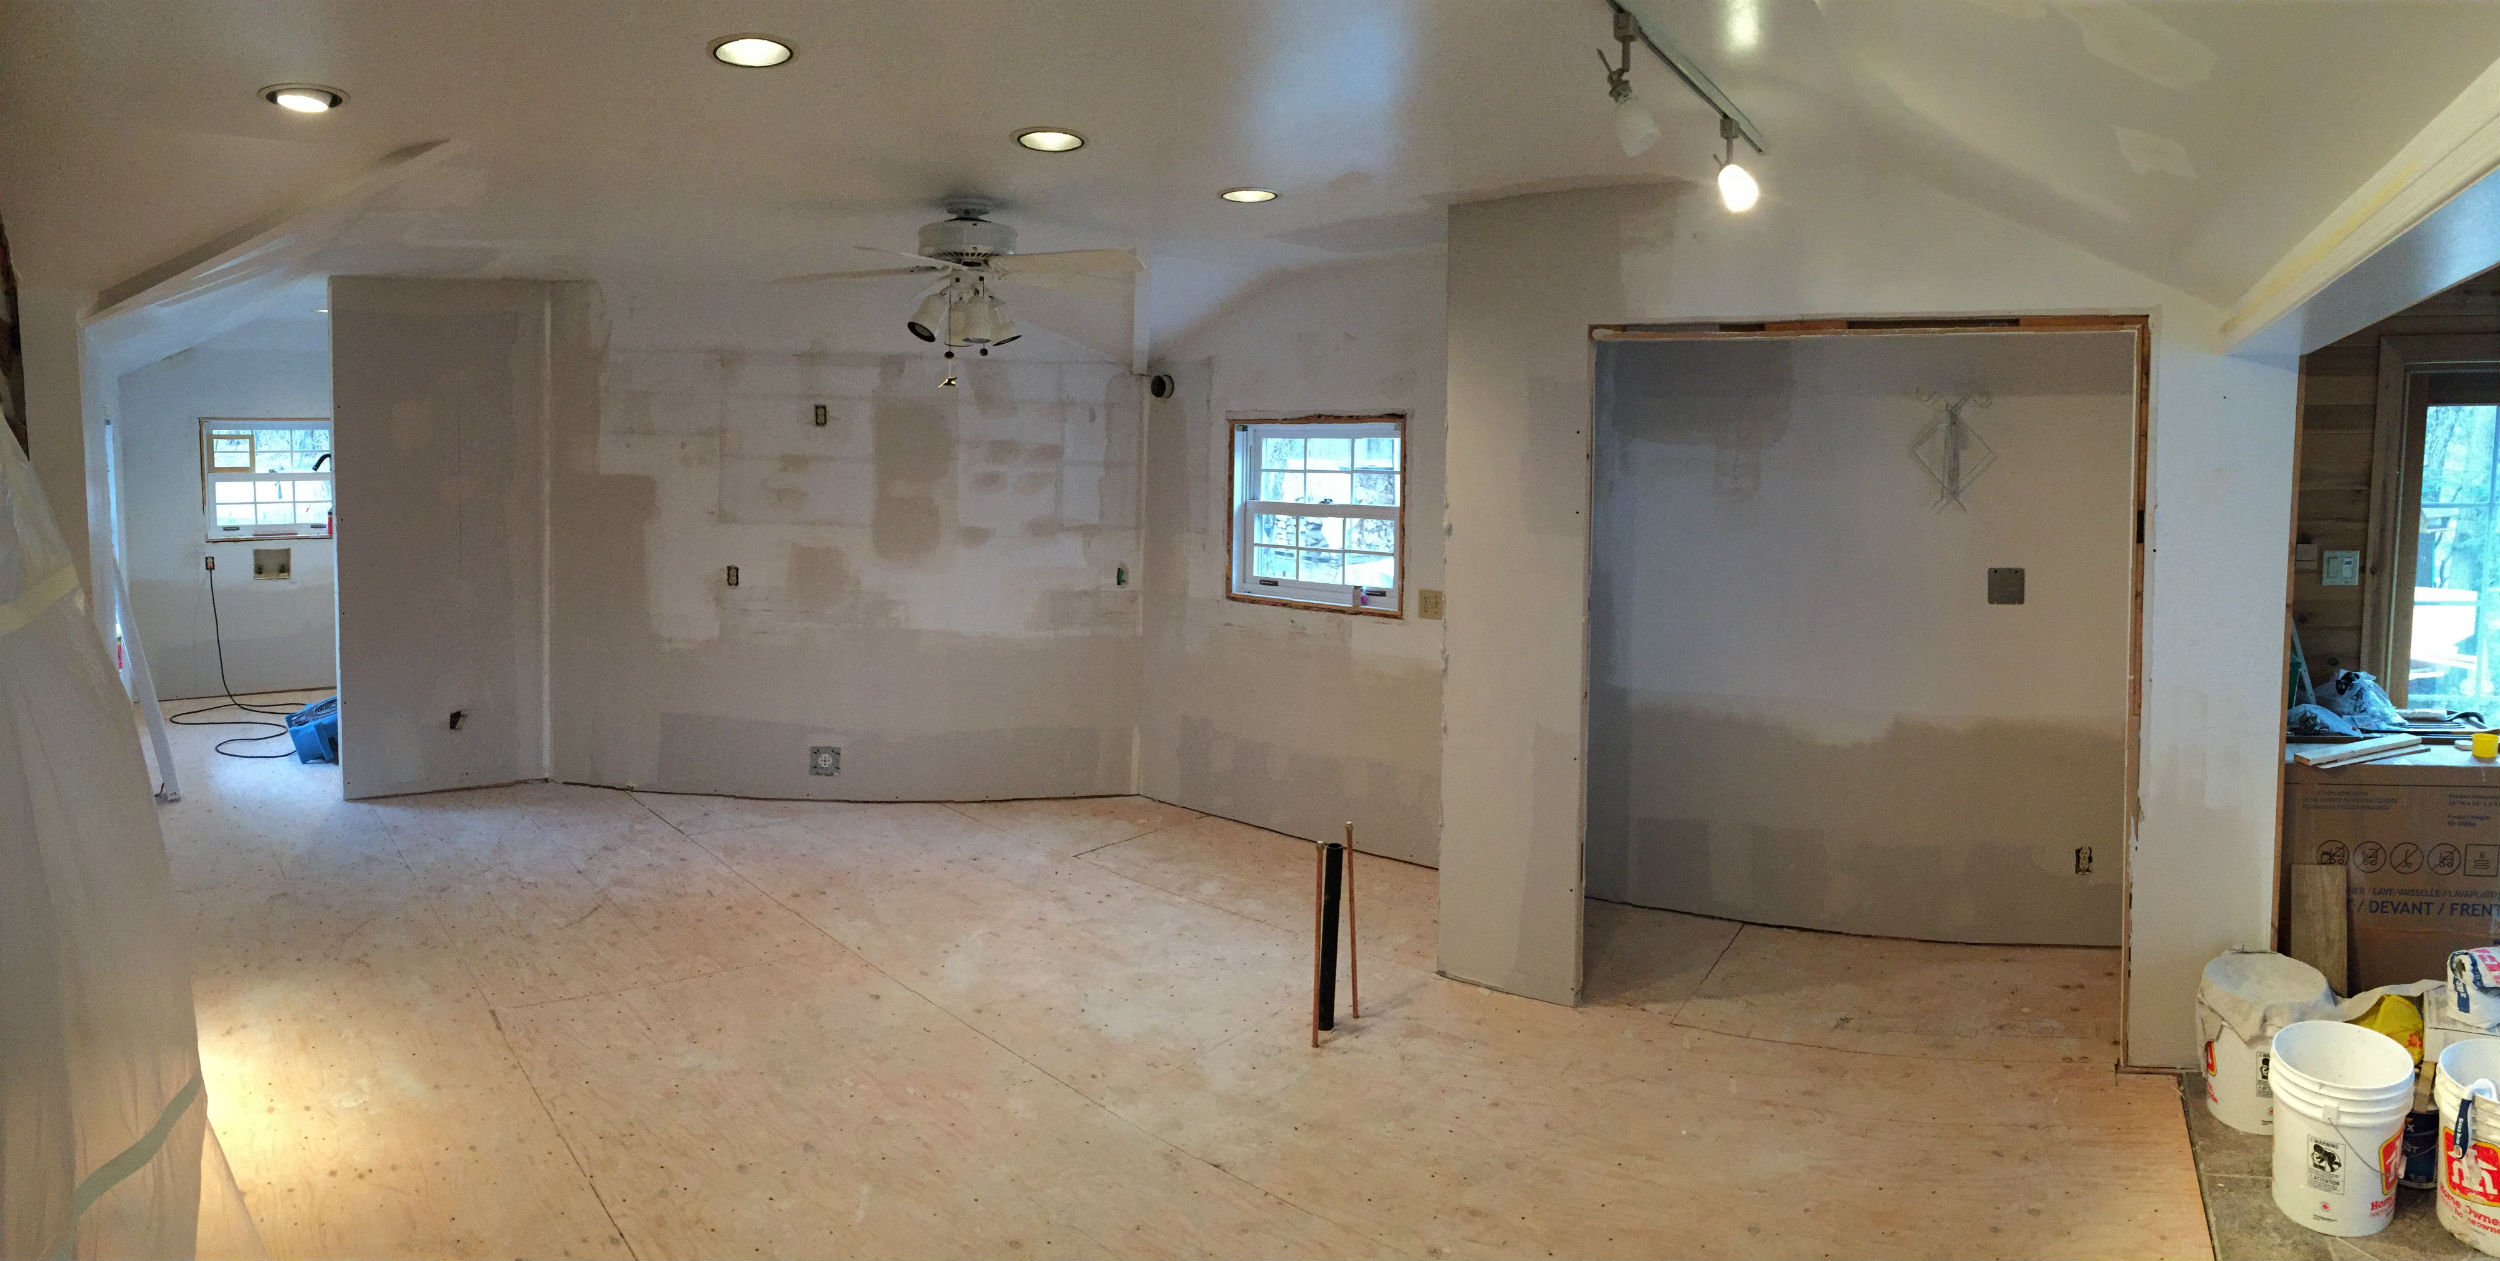 Room during painting job